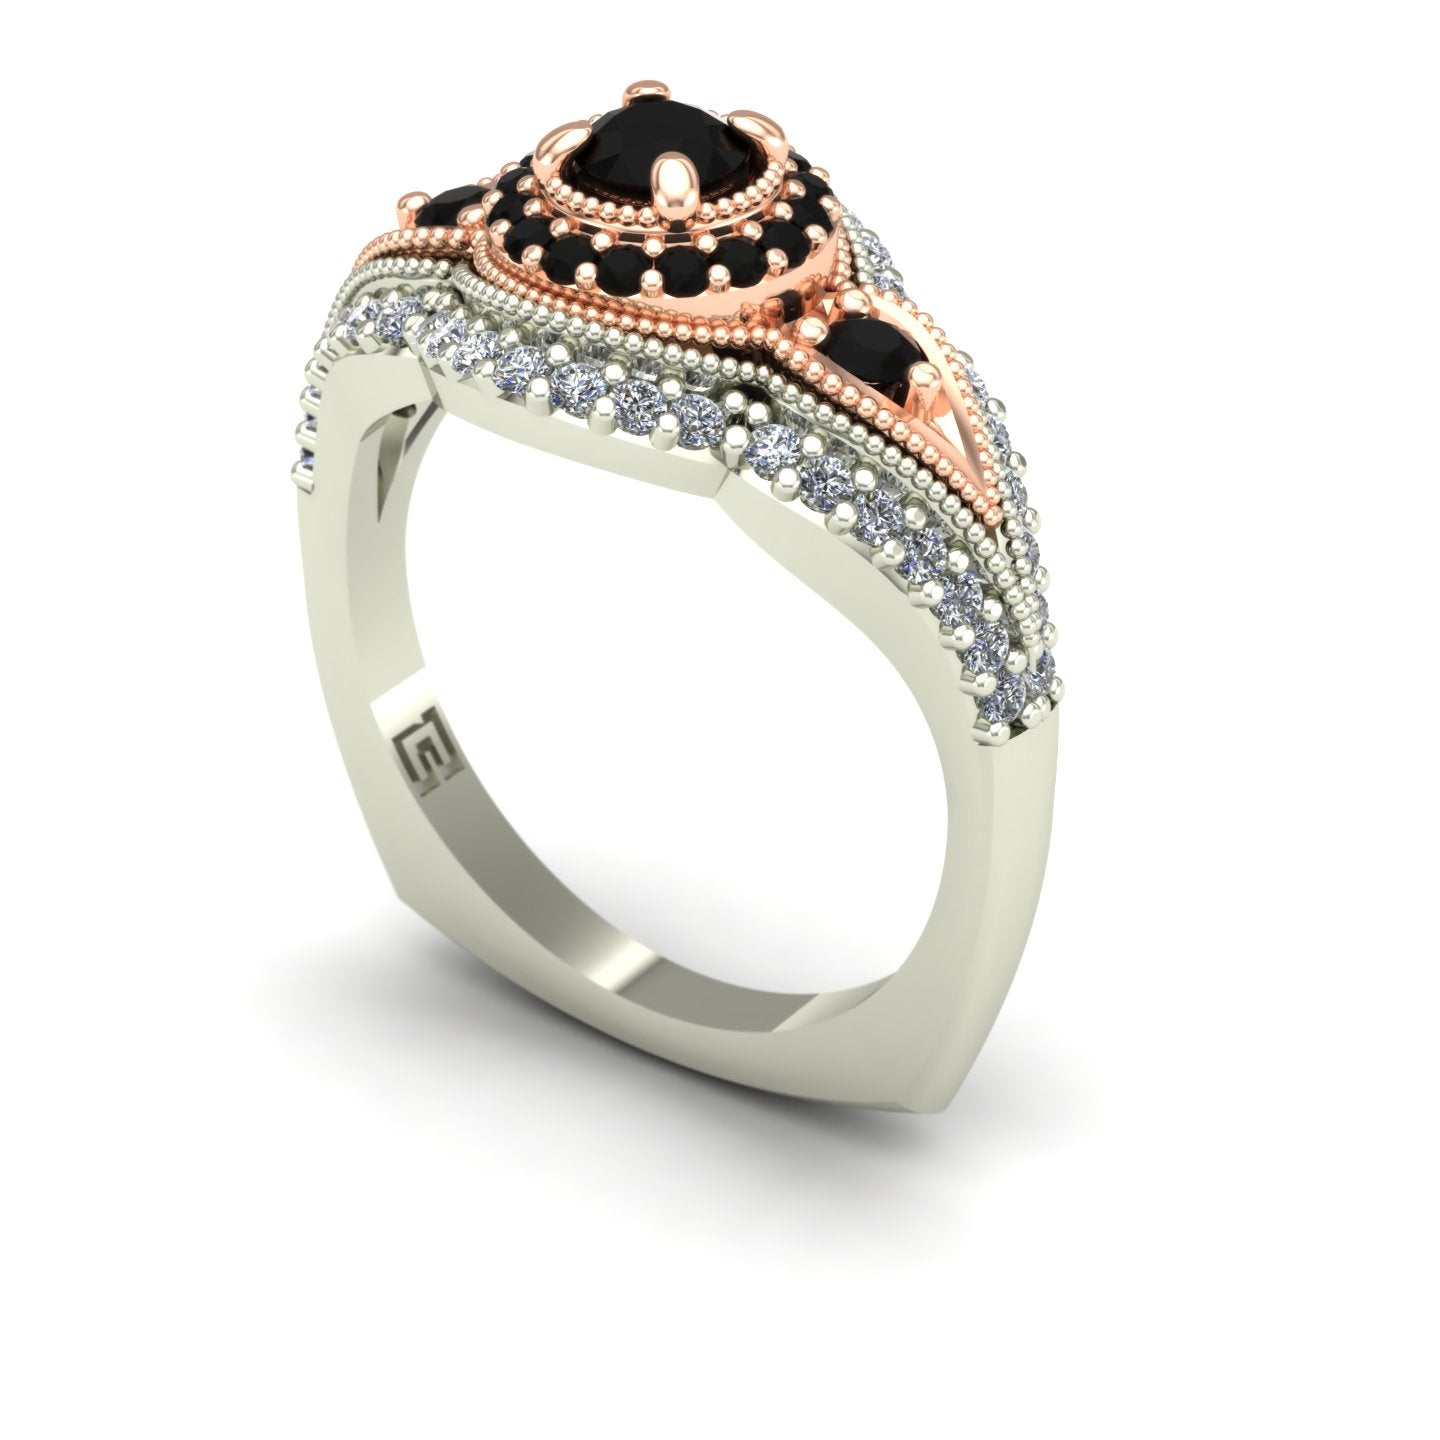 Black diamond two tone engagement ring in 14k white and rose gold